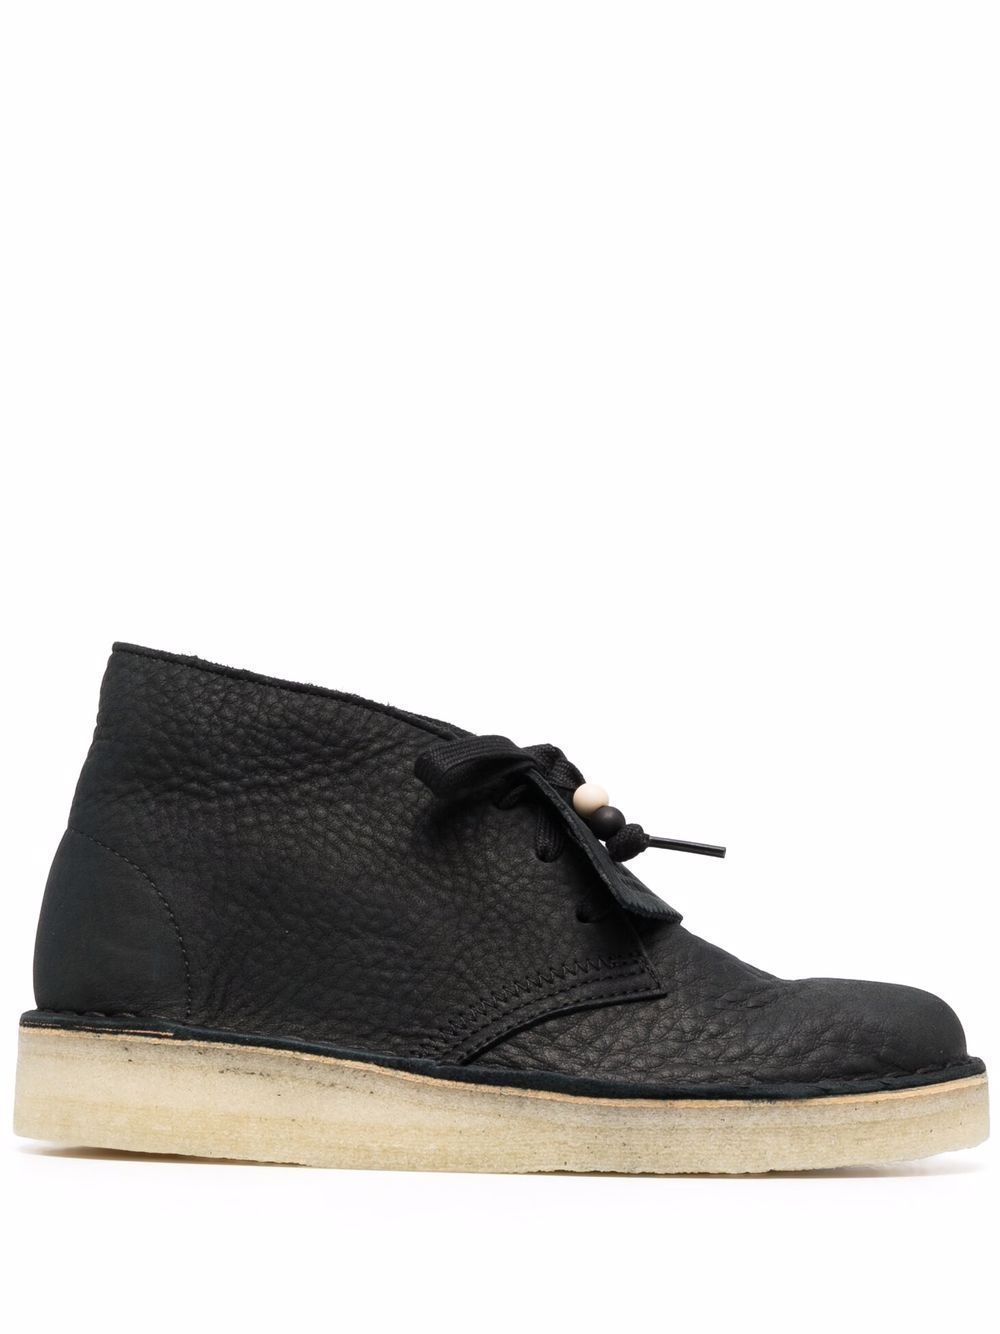 Desert coal leather ankle boots